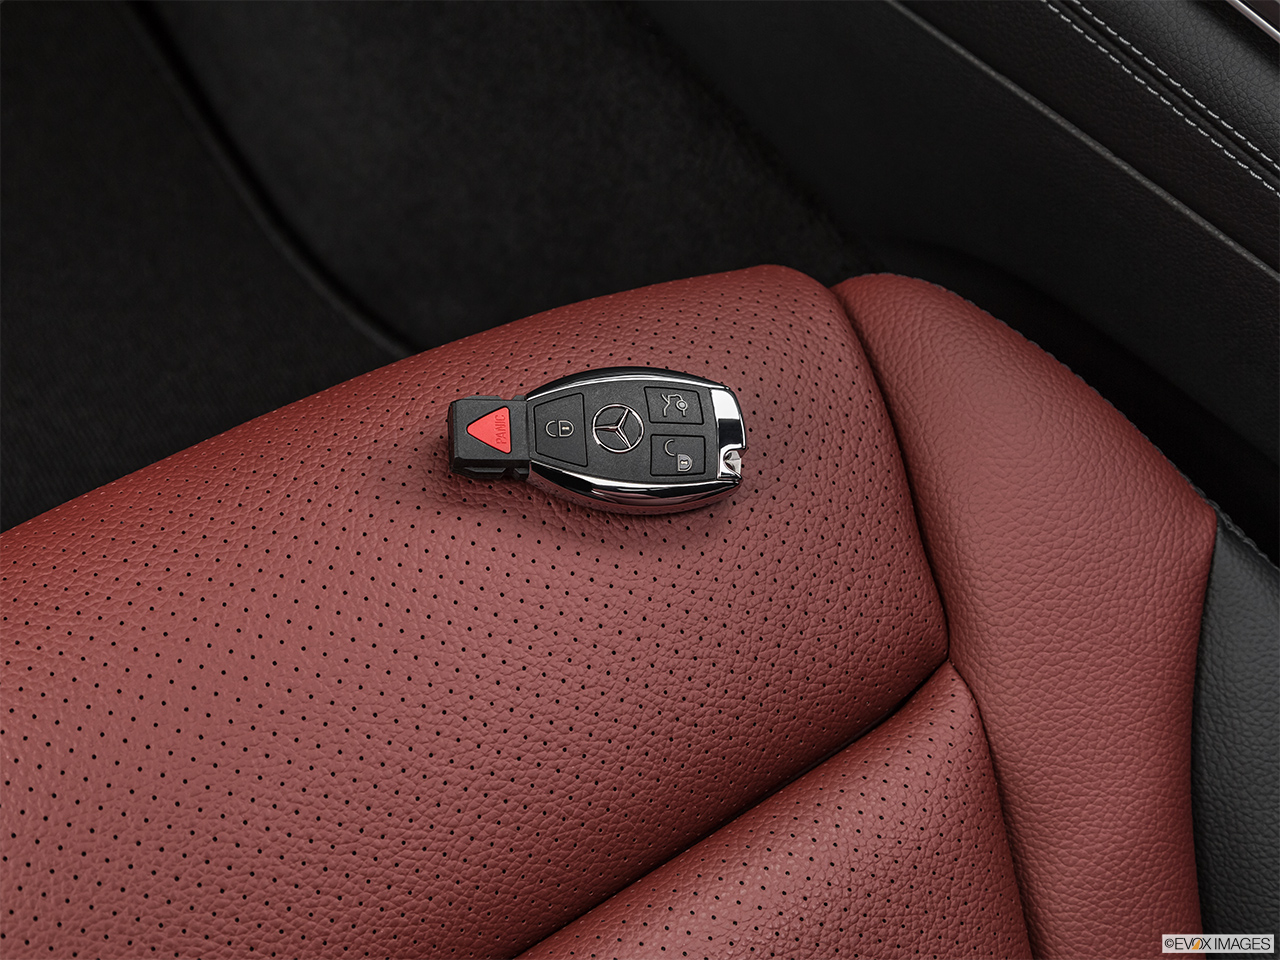 2019 Mercedes-Benz GLC-Class Coupe GLC 300 4MATIC Key fob on driver's seat.